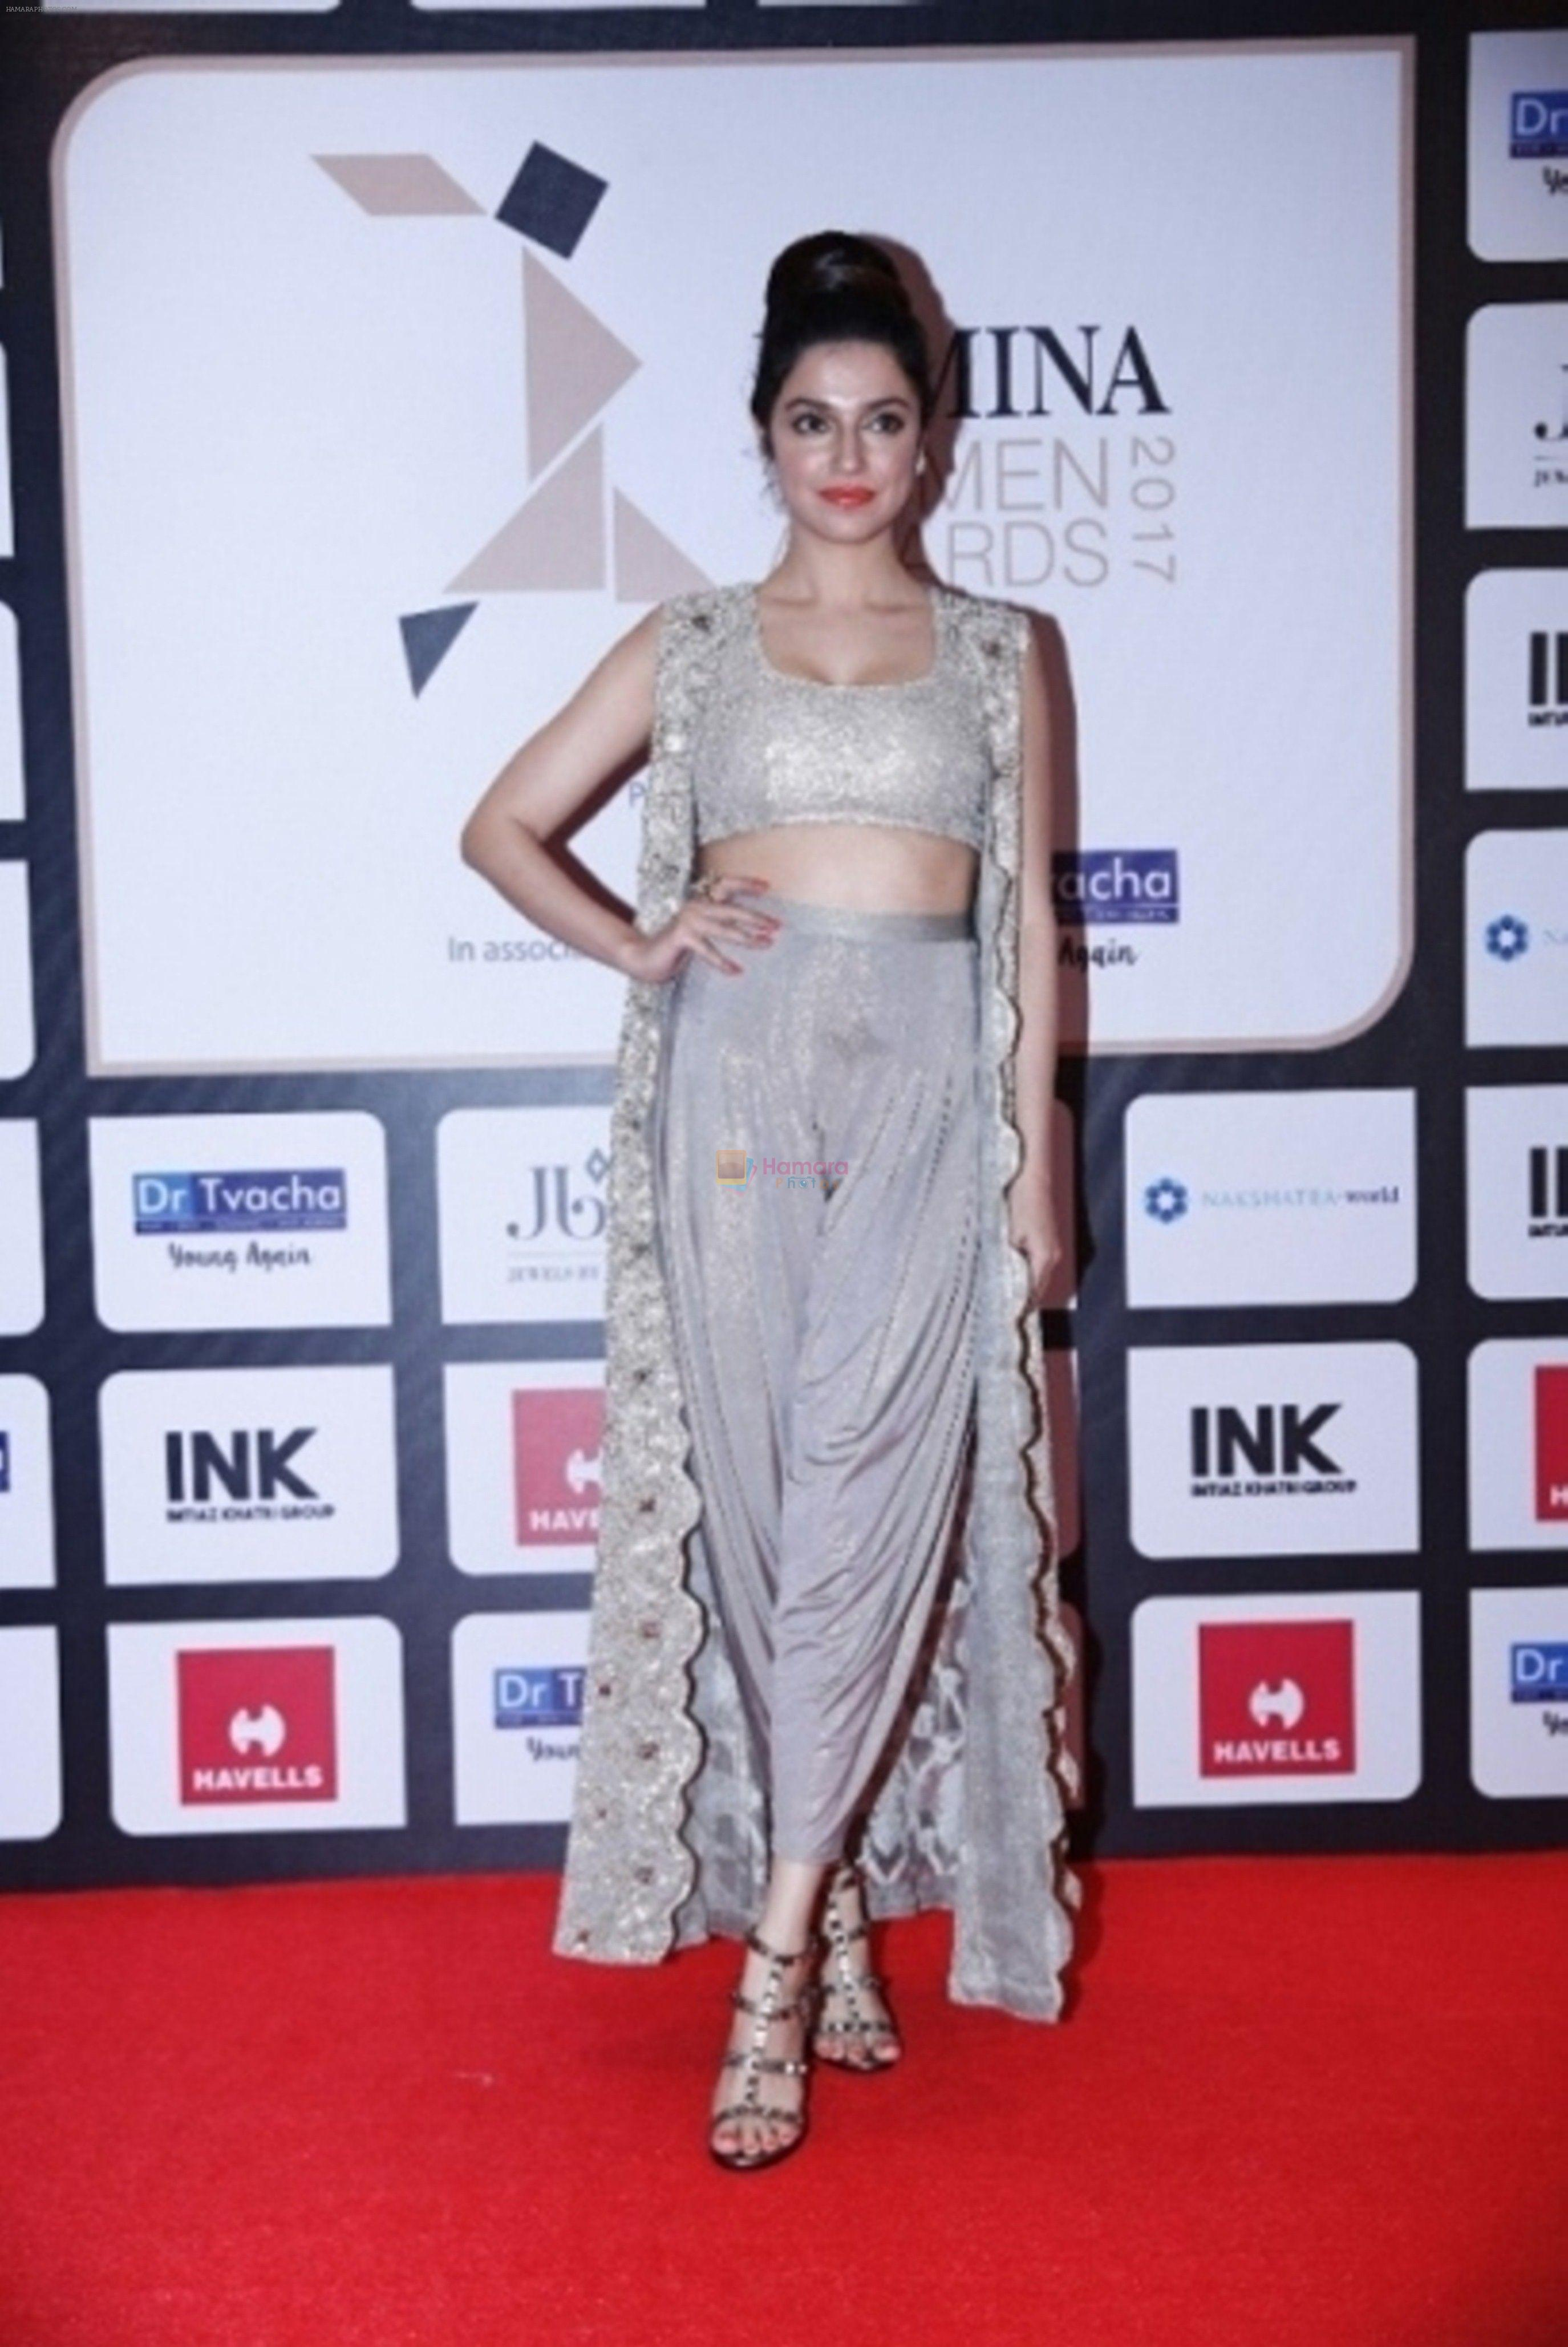 Divya Khosla at Femina Women's Award 2017 on 28th June 2017